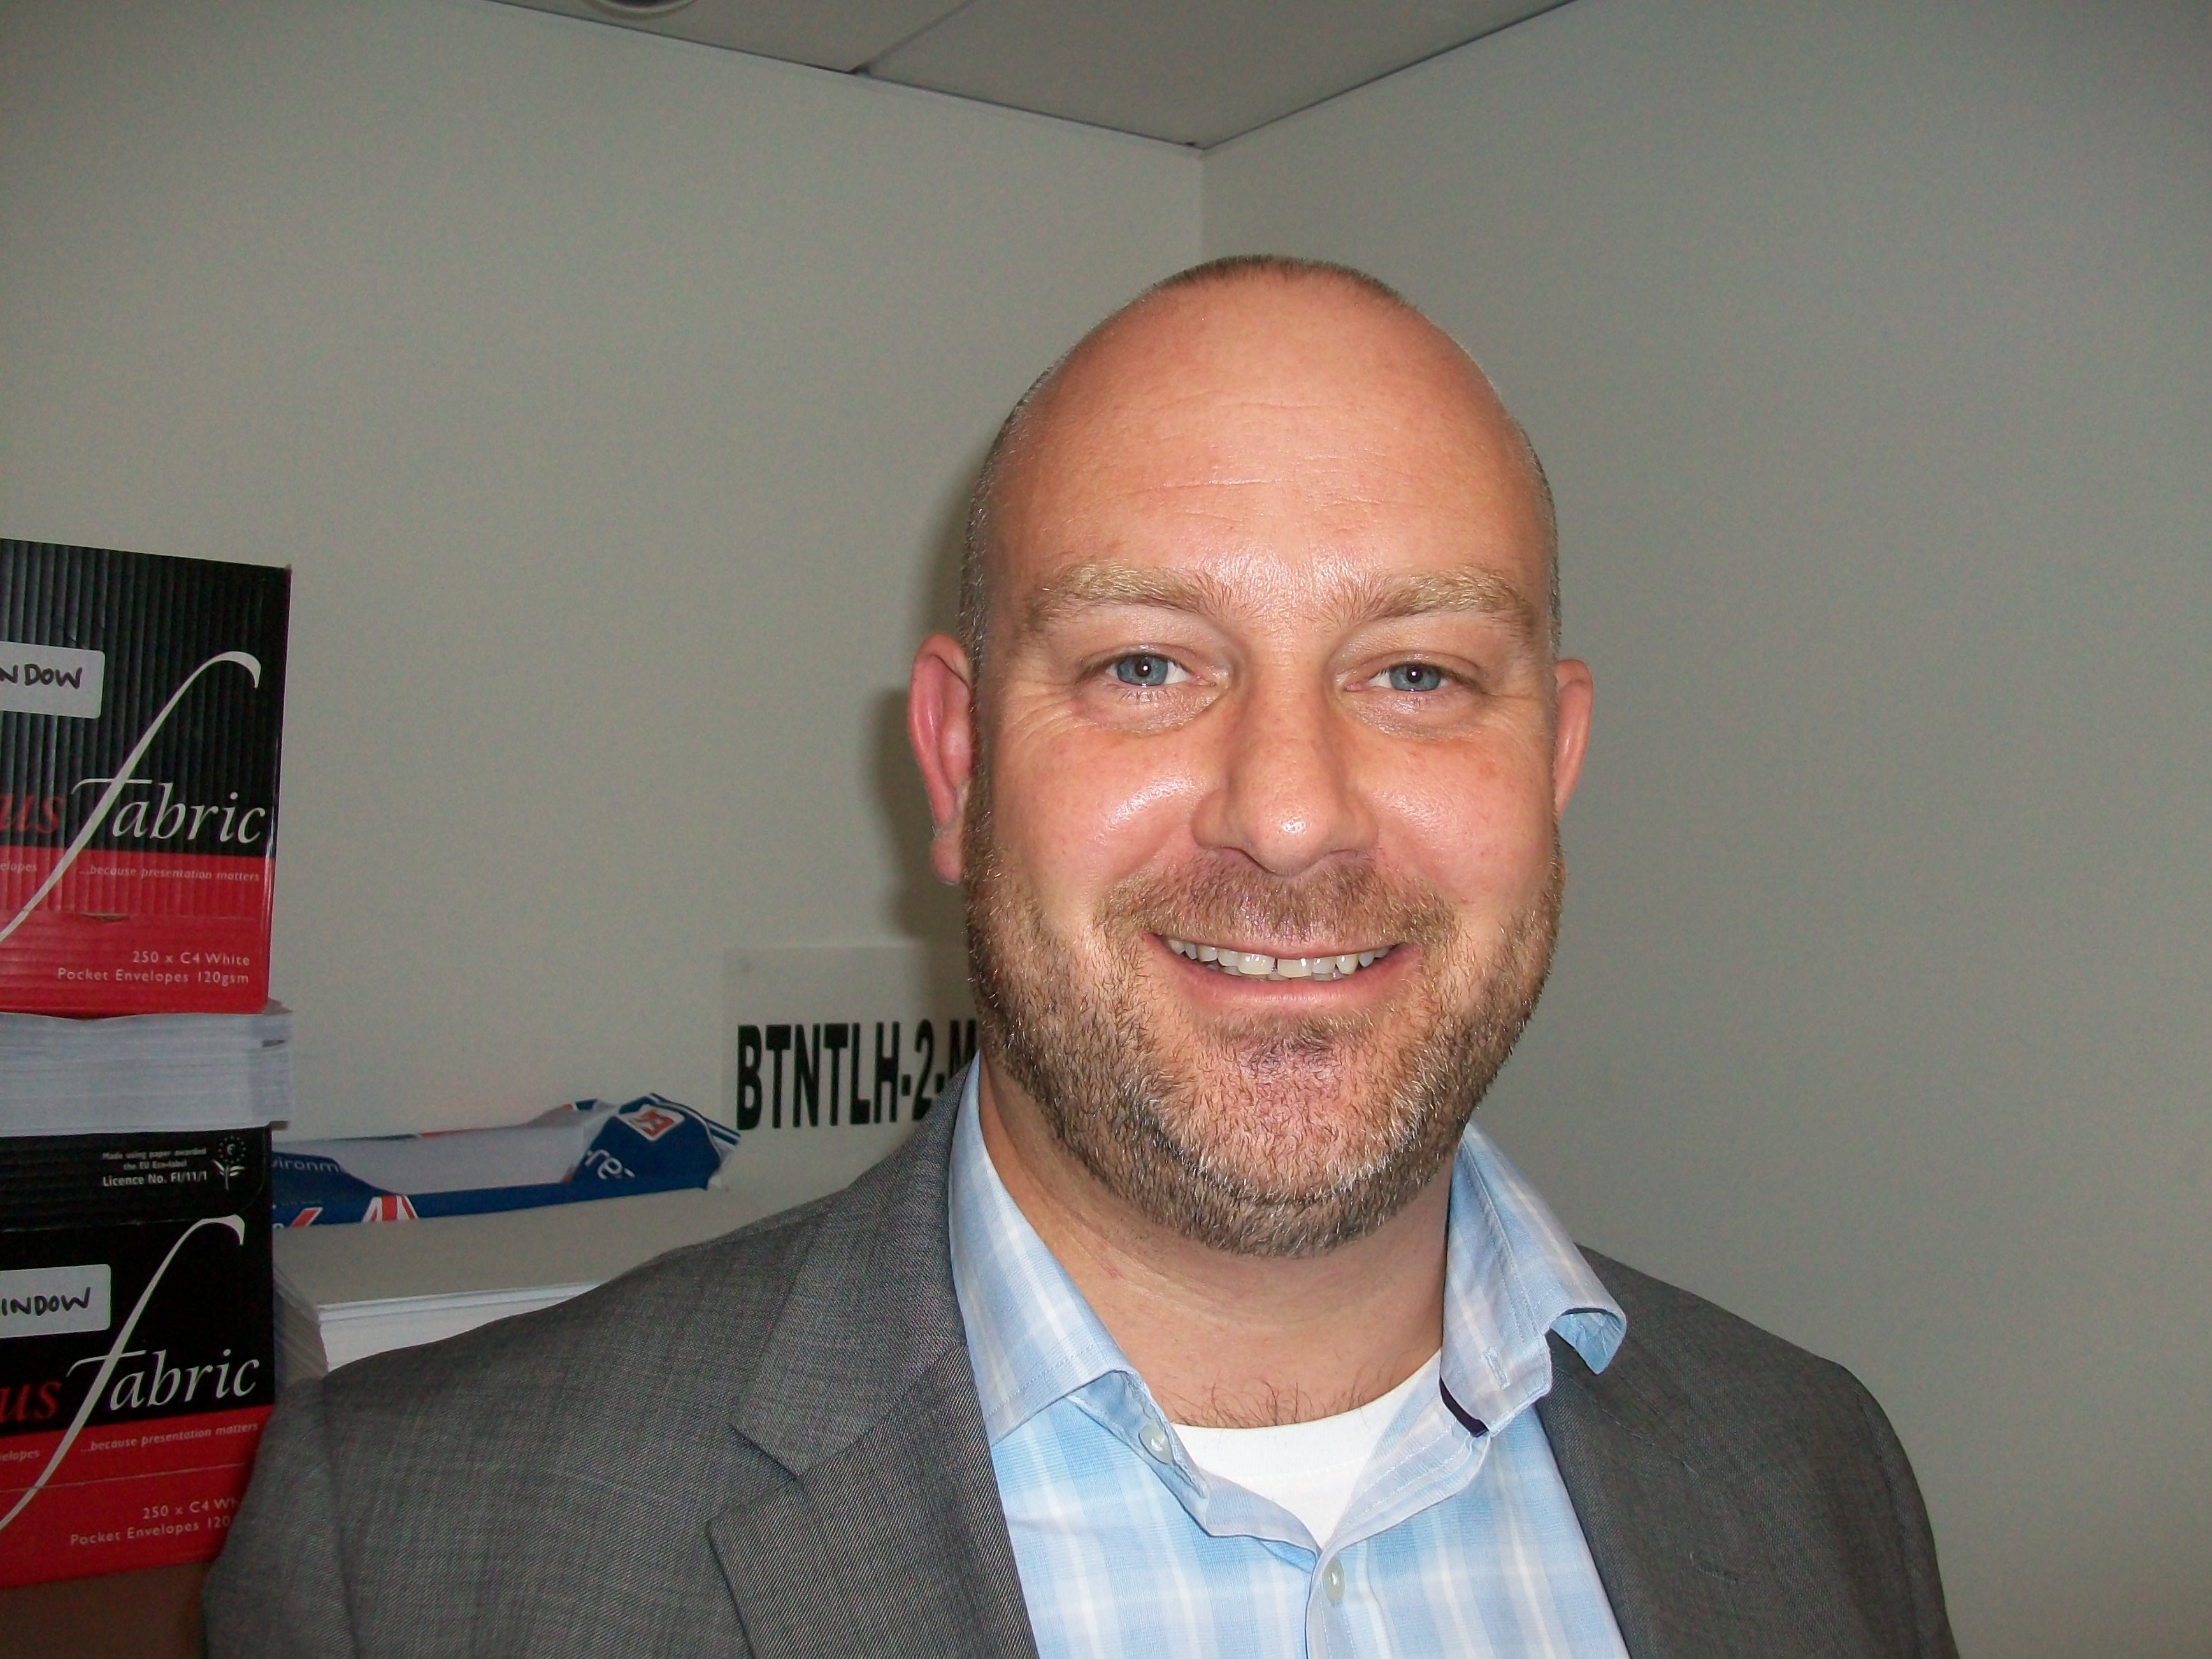 American Express has promoted Jonathan Marsh to Europe, Middle East and Africa (EMEA) benefits manager.